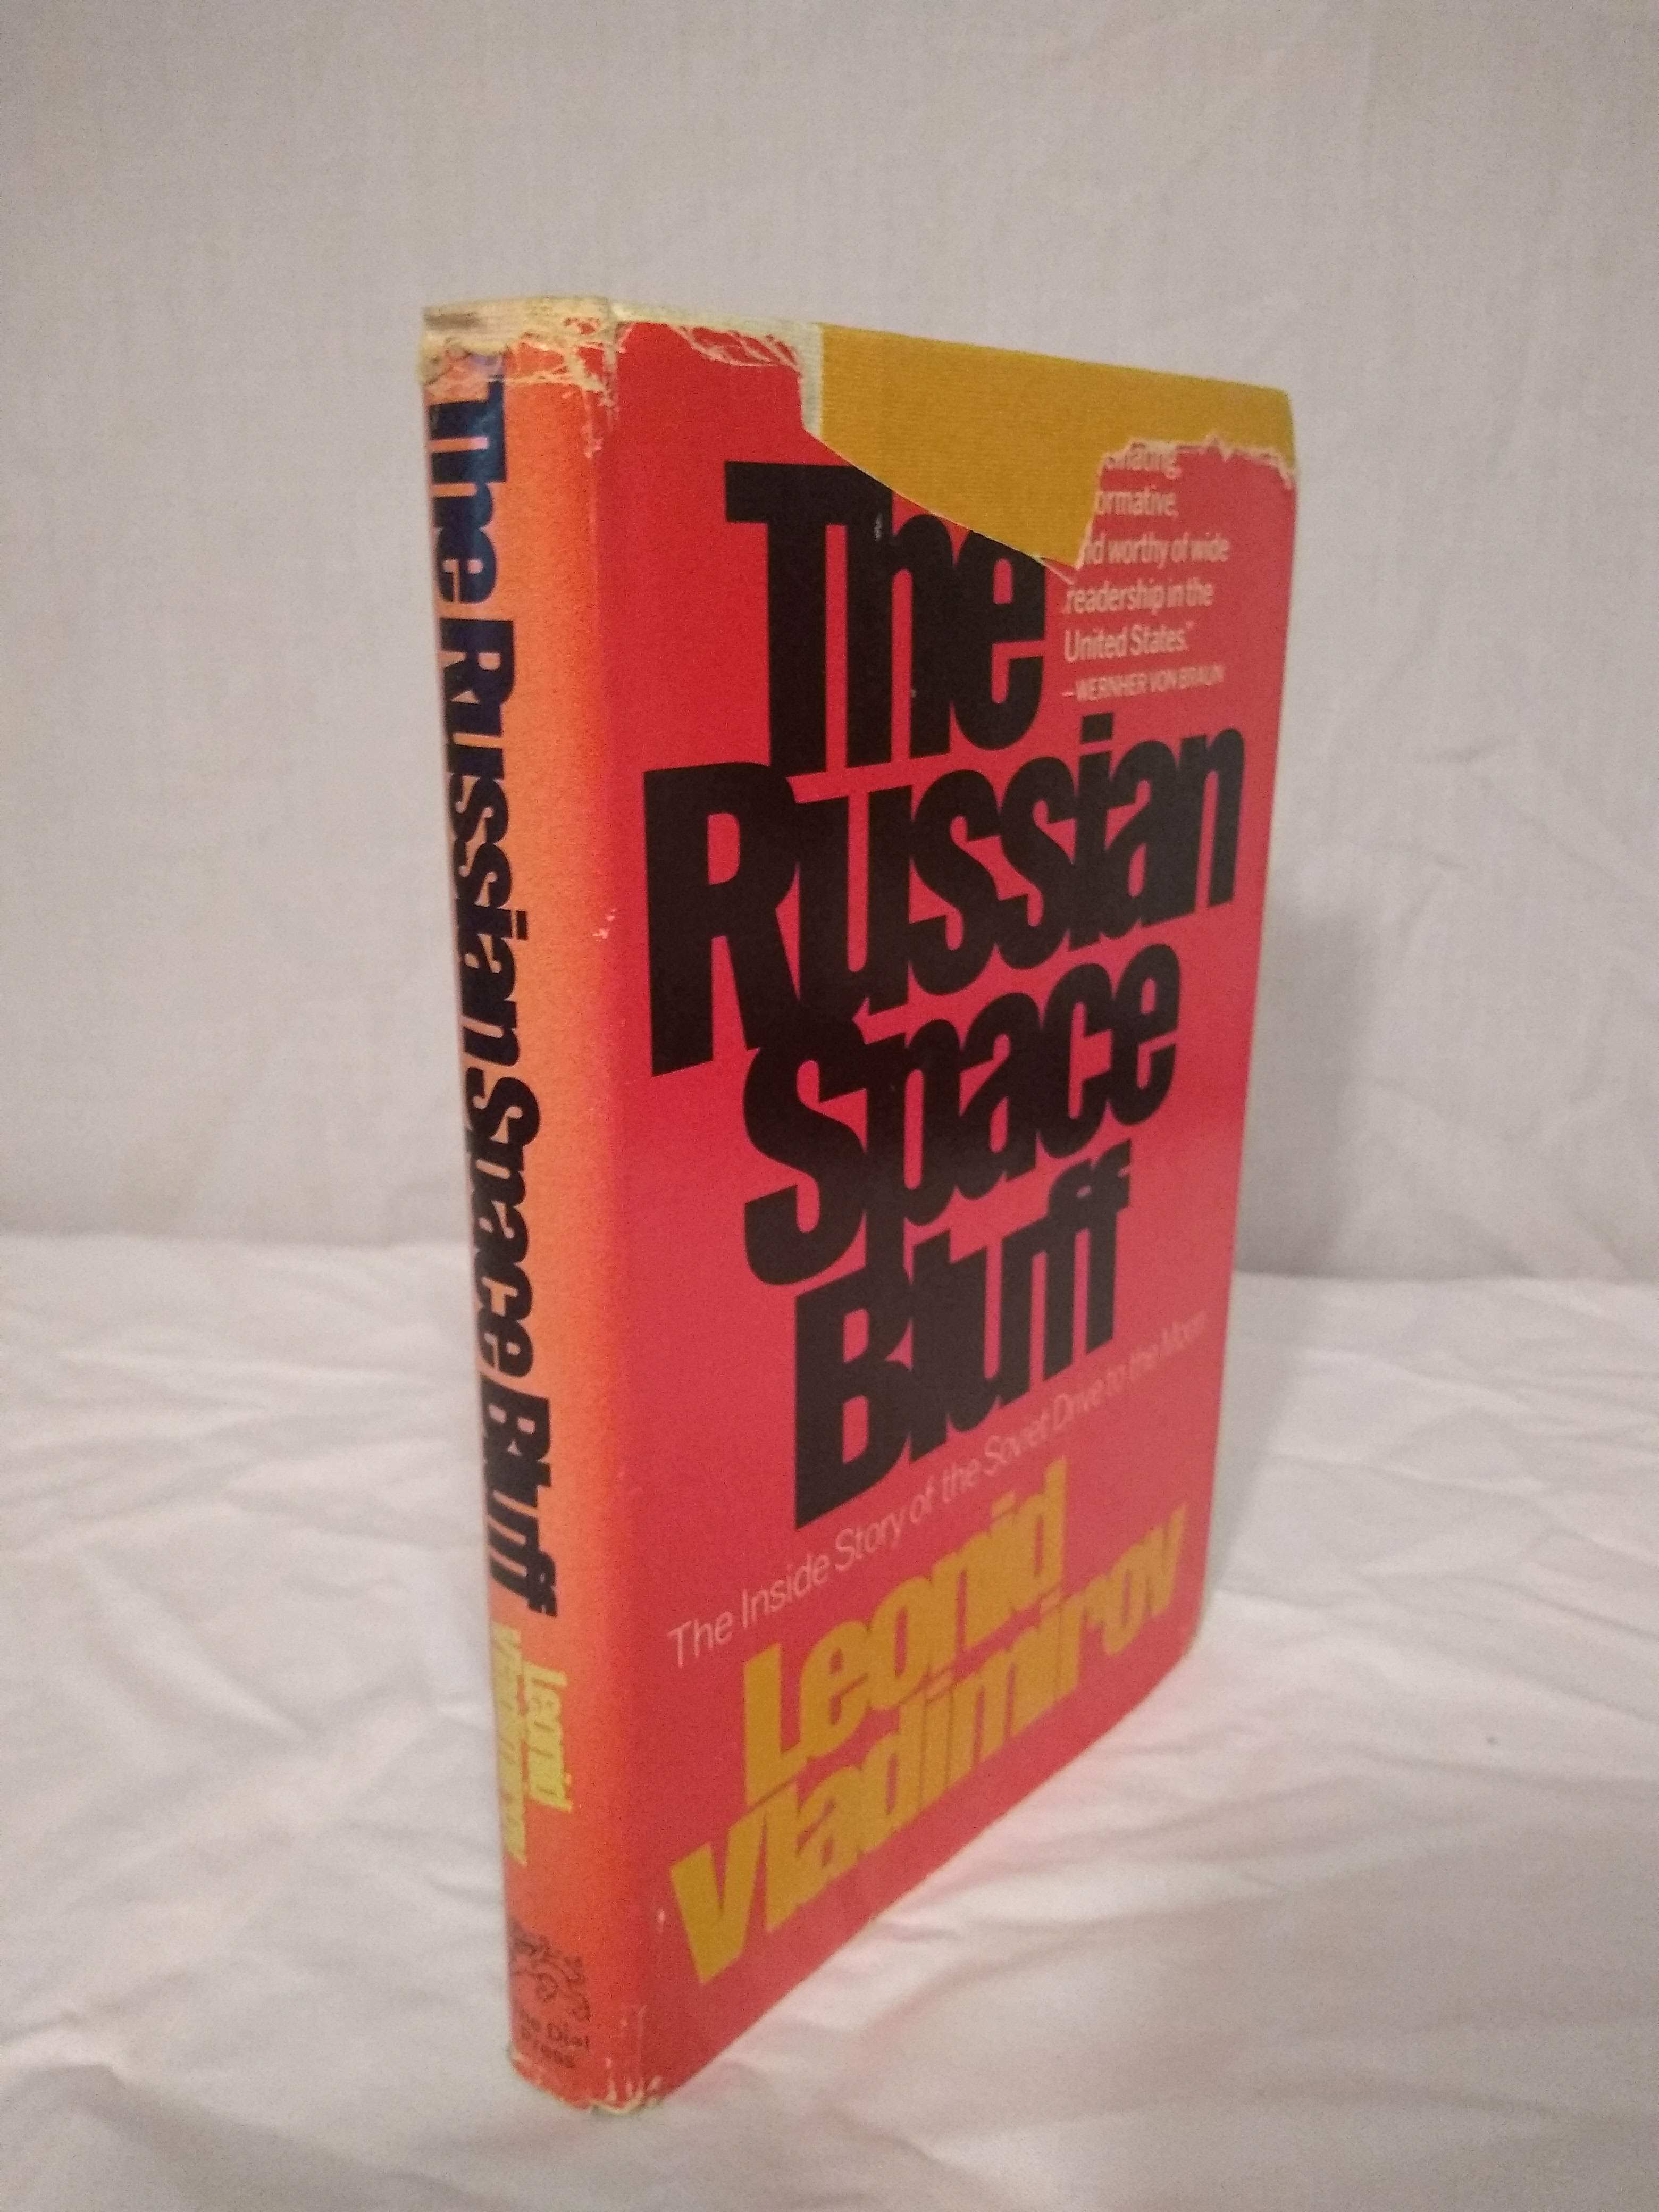 The Russian space bluff;: The inside story of the Soviet drive to the moon, Vladimirov, Leonid